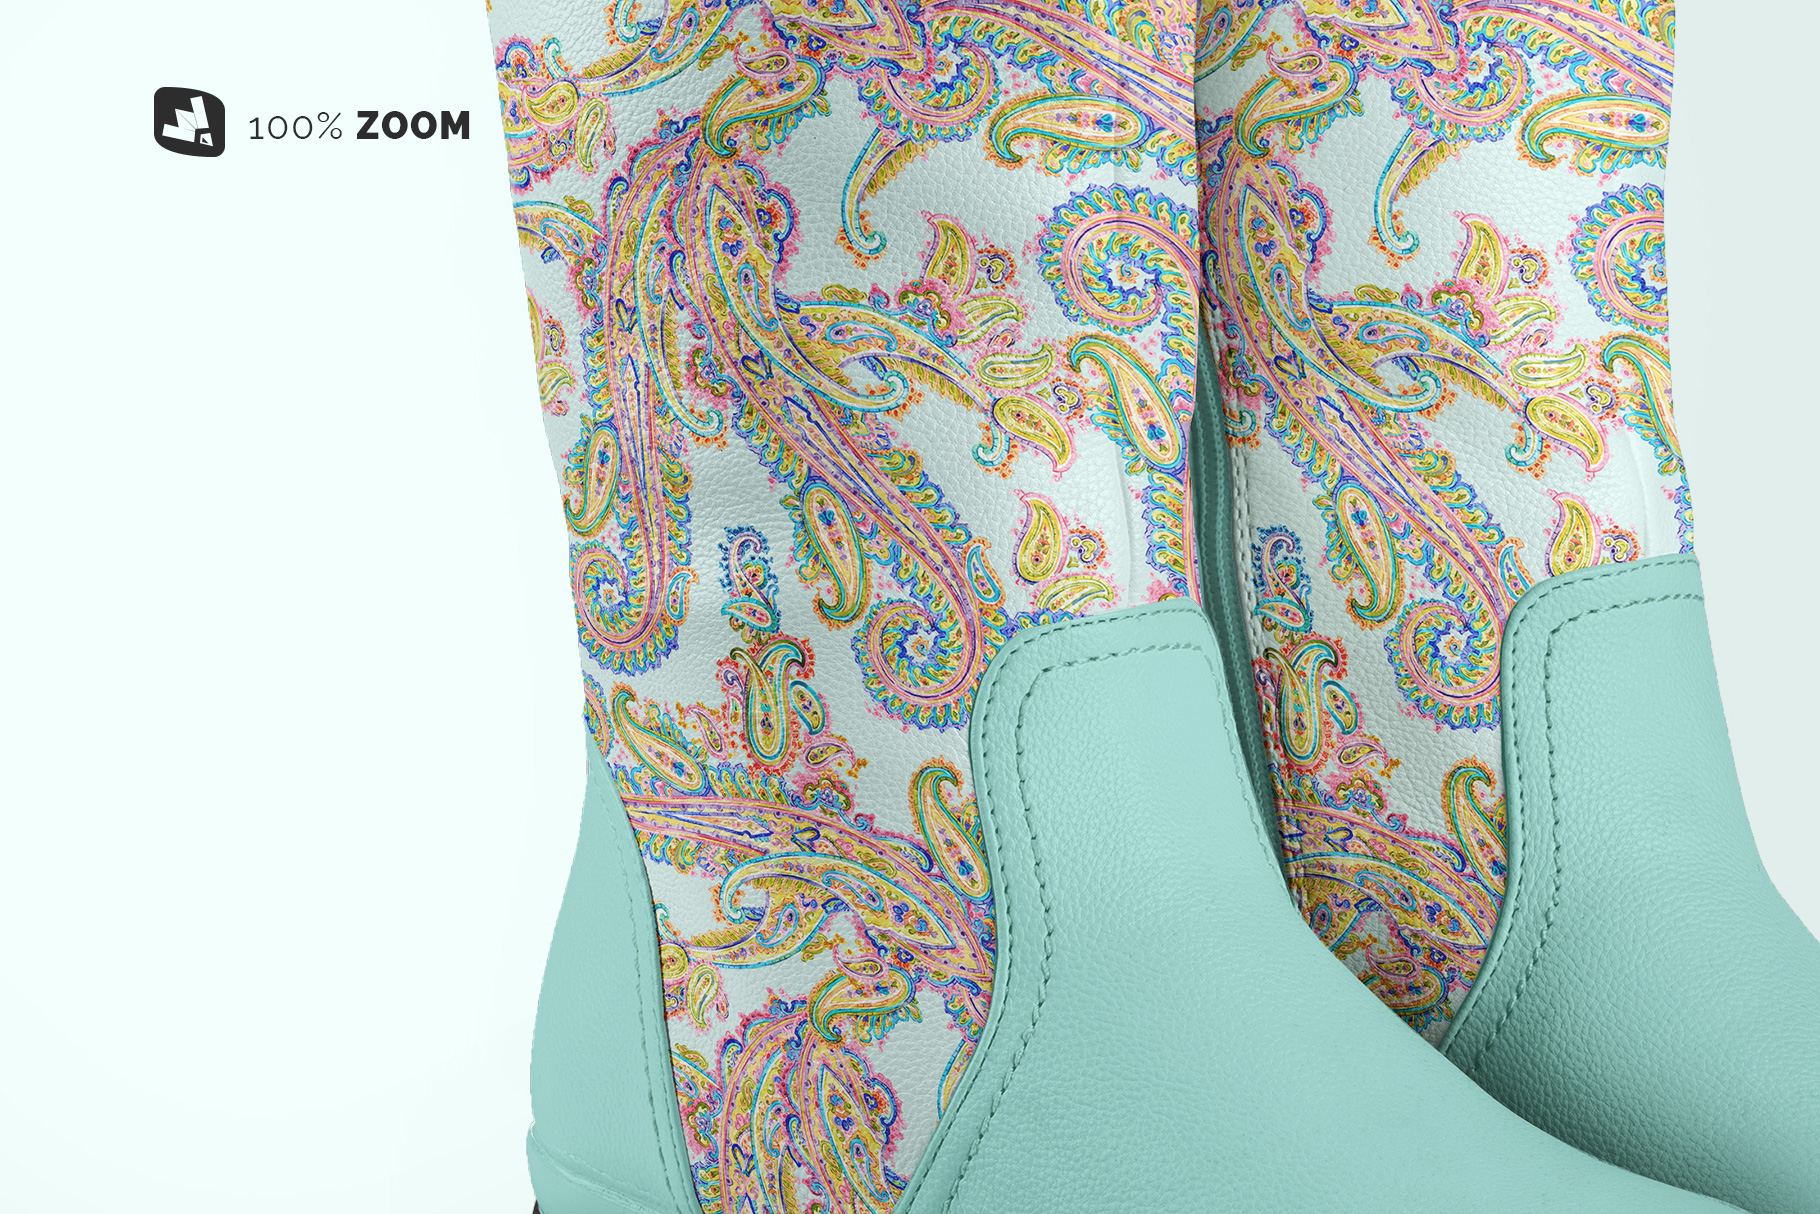 zoomed in image of the extended calf leather boots mockup